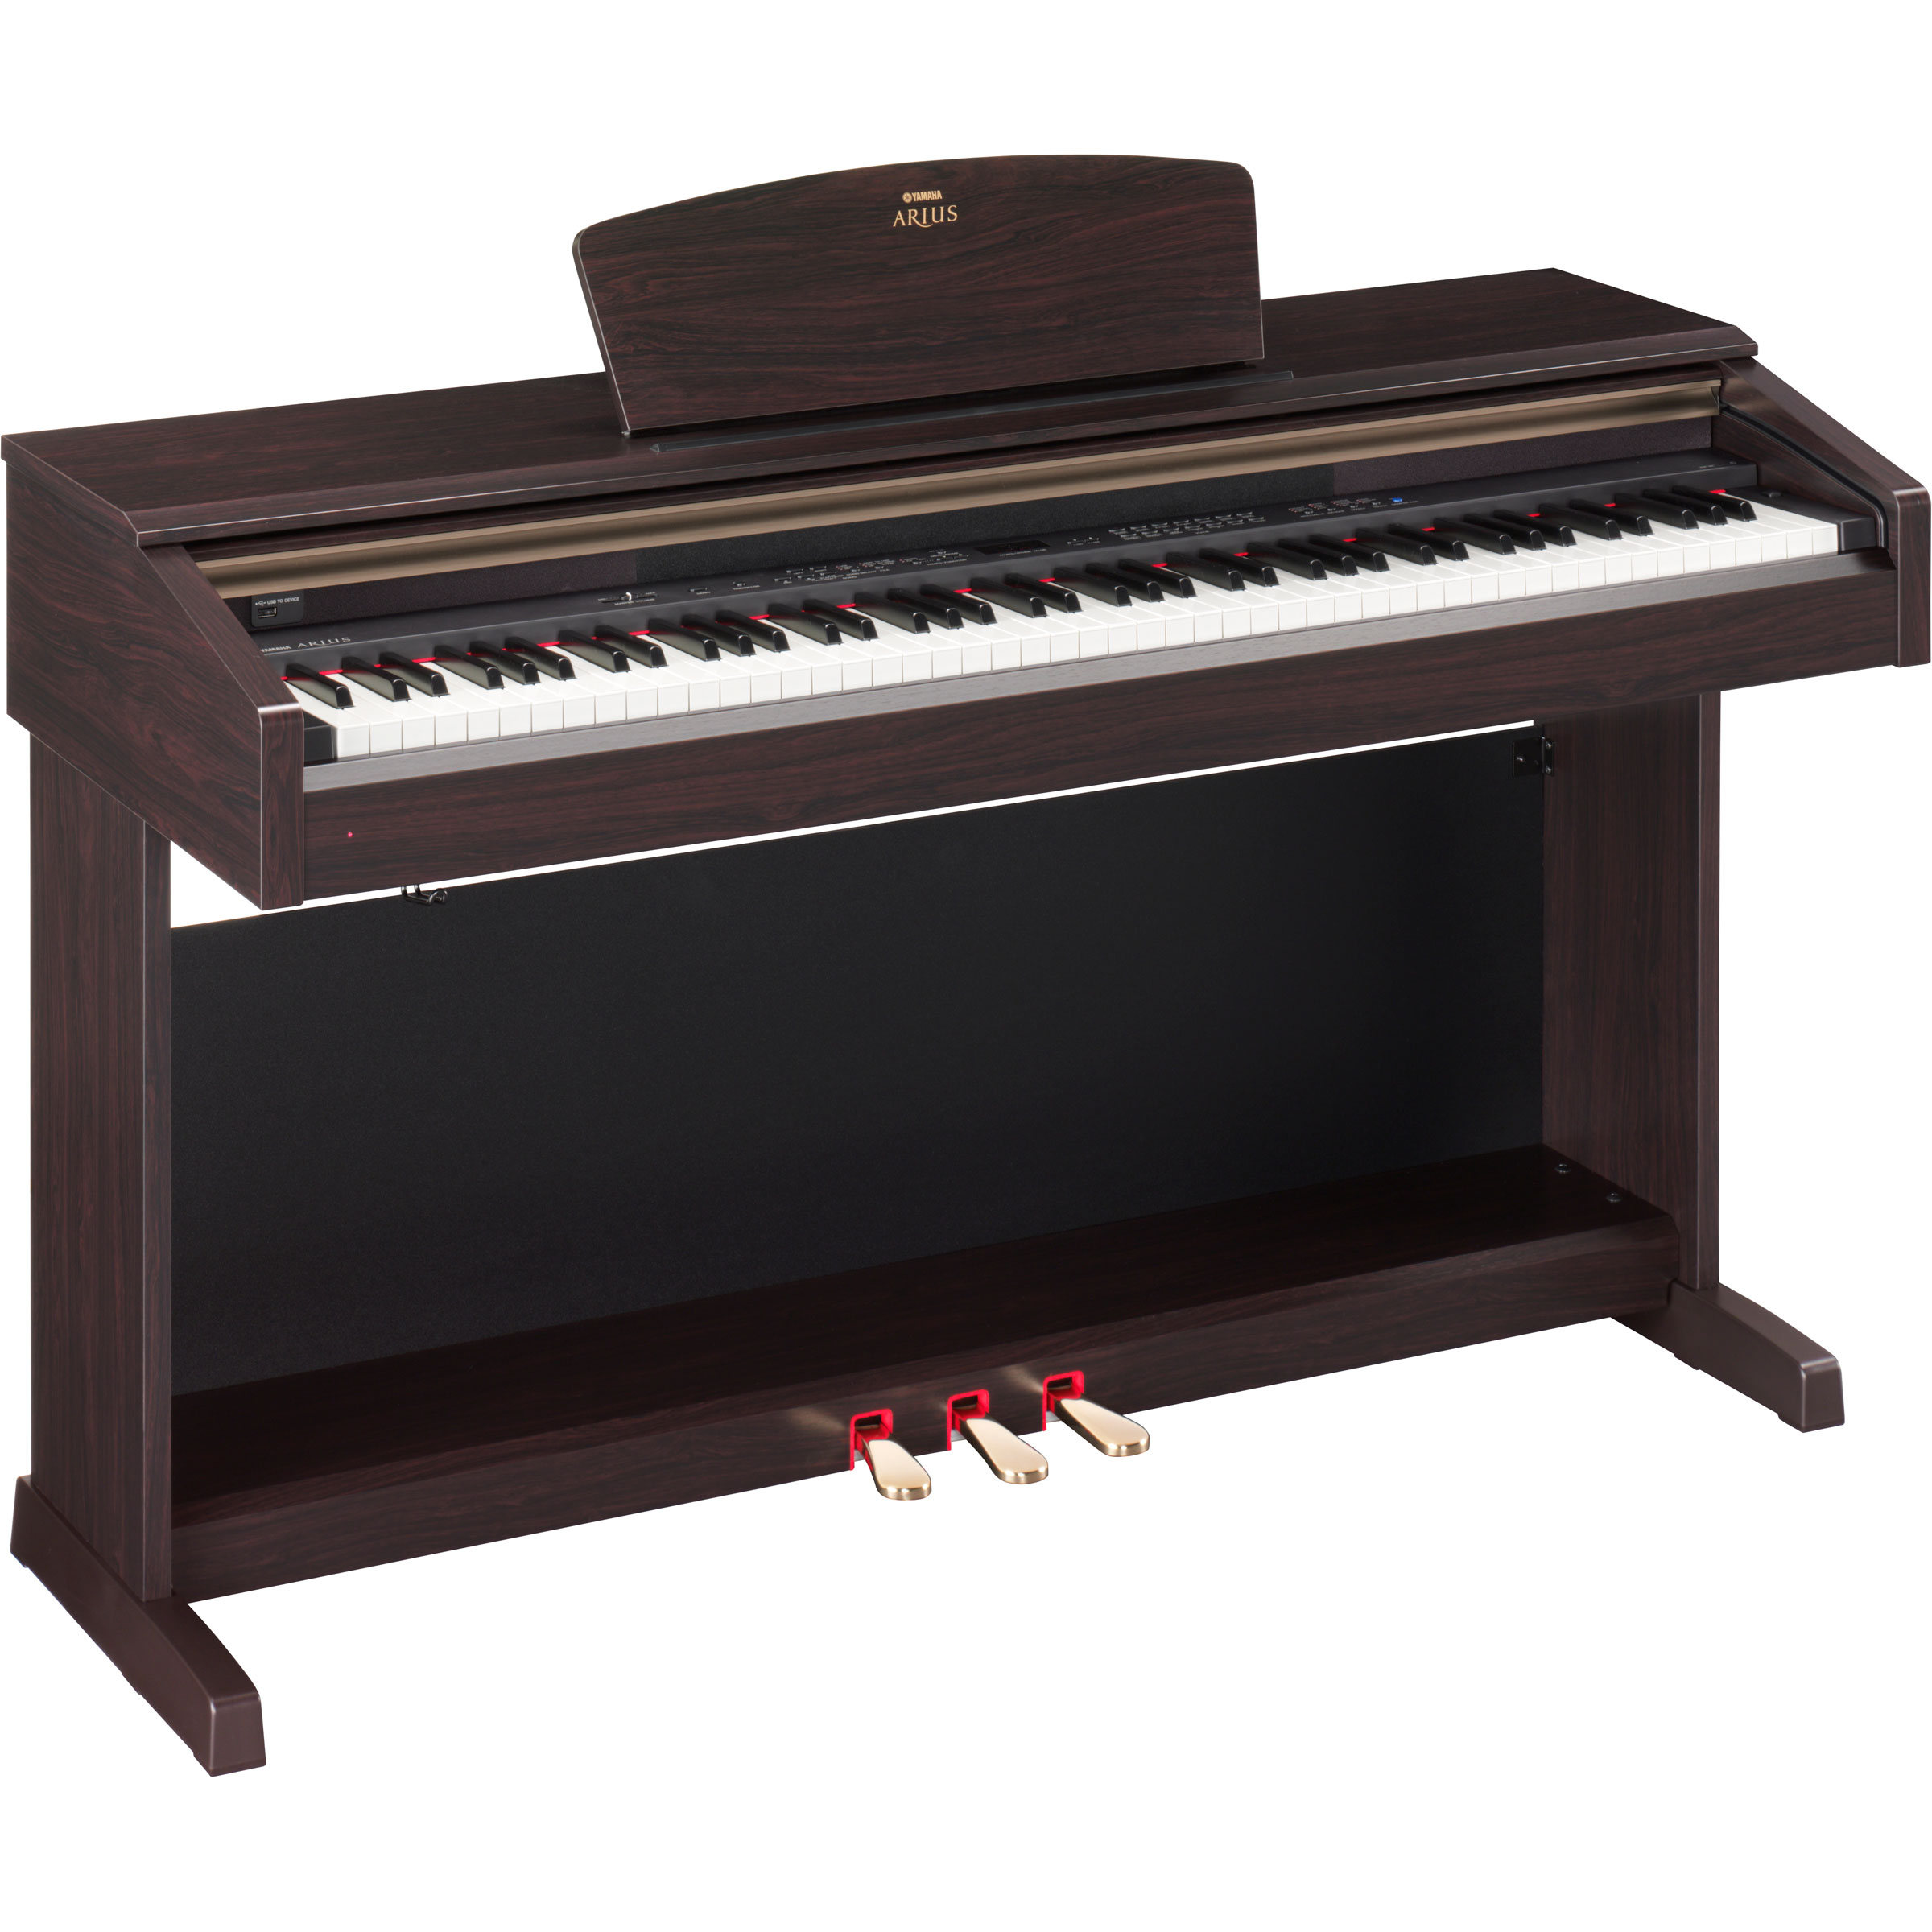 yamaha arius 88 key digital piano ydp 181. Black Bedroom Furniture Sets. Home Design Ideas